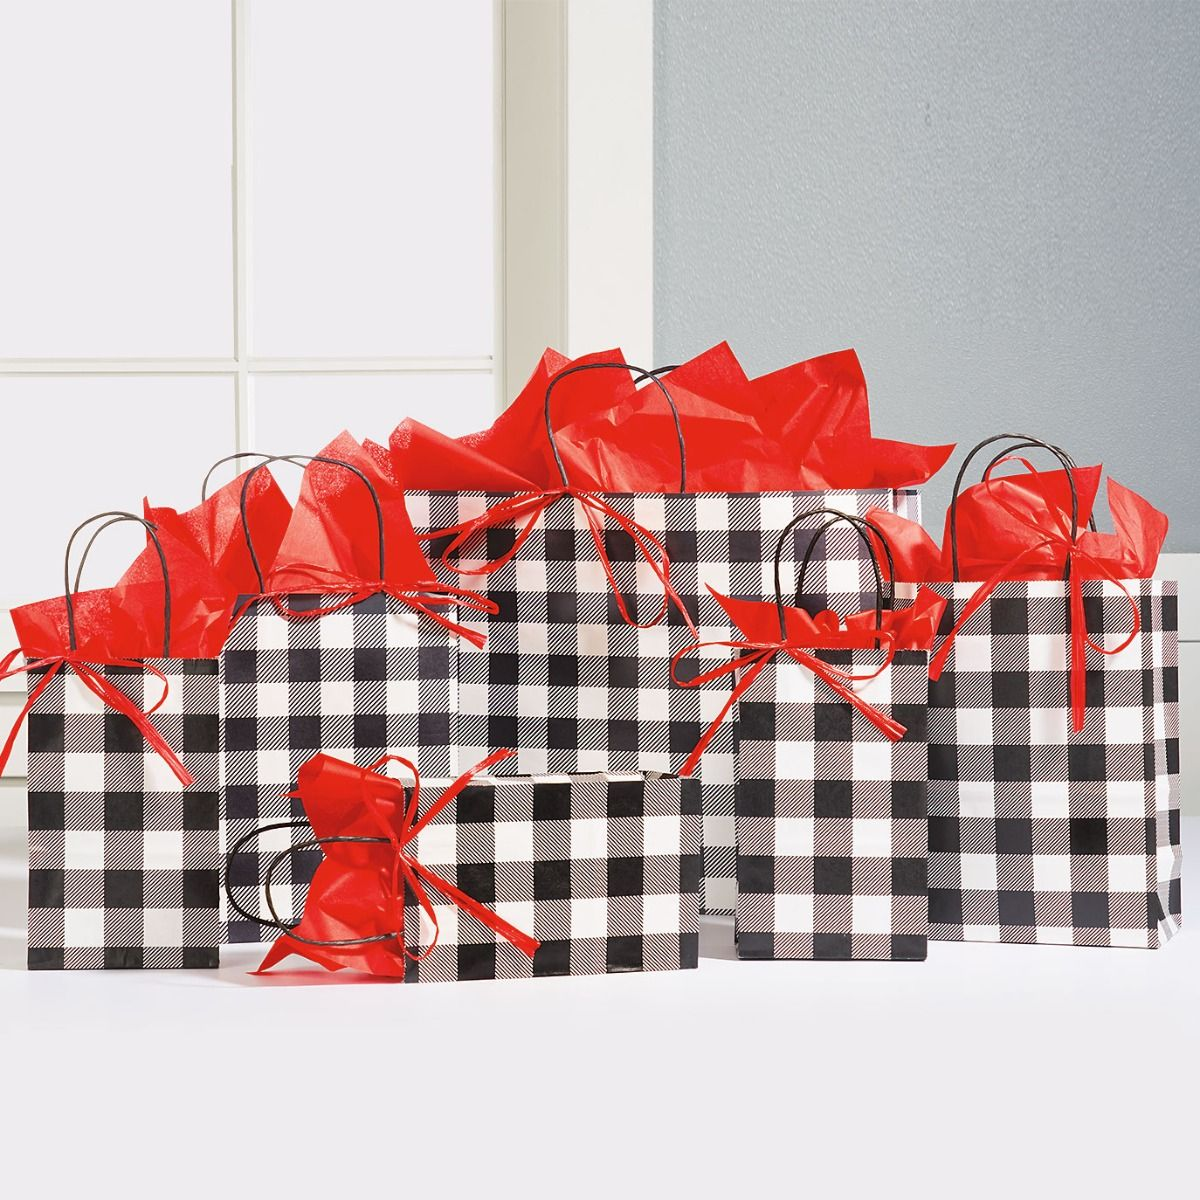 Black & White Plaid Gift Bags